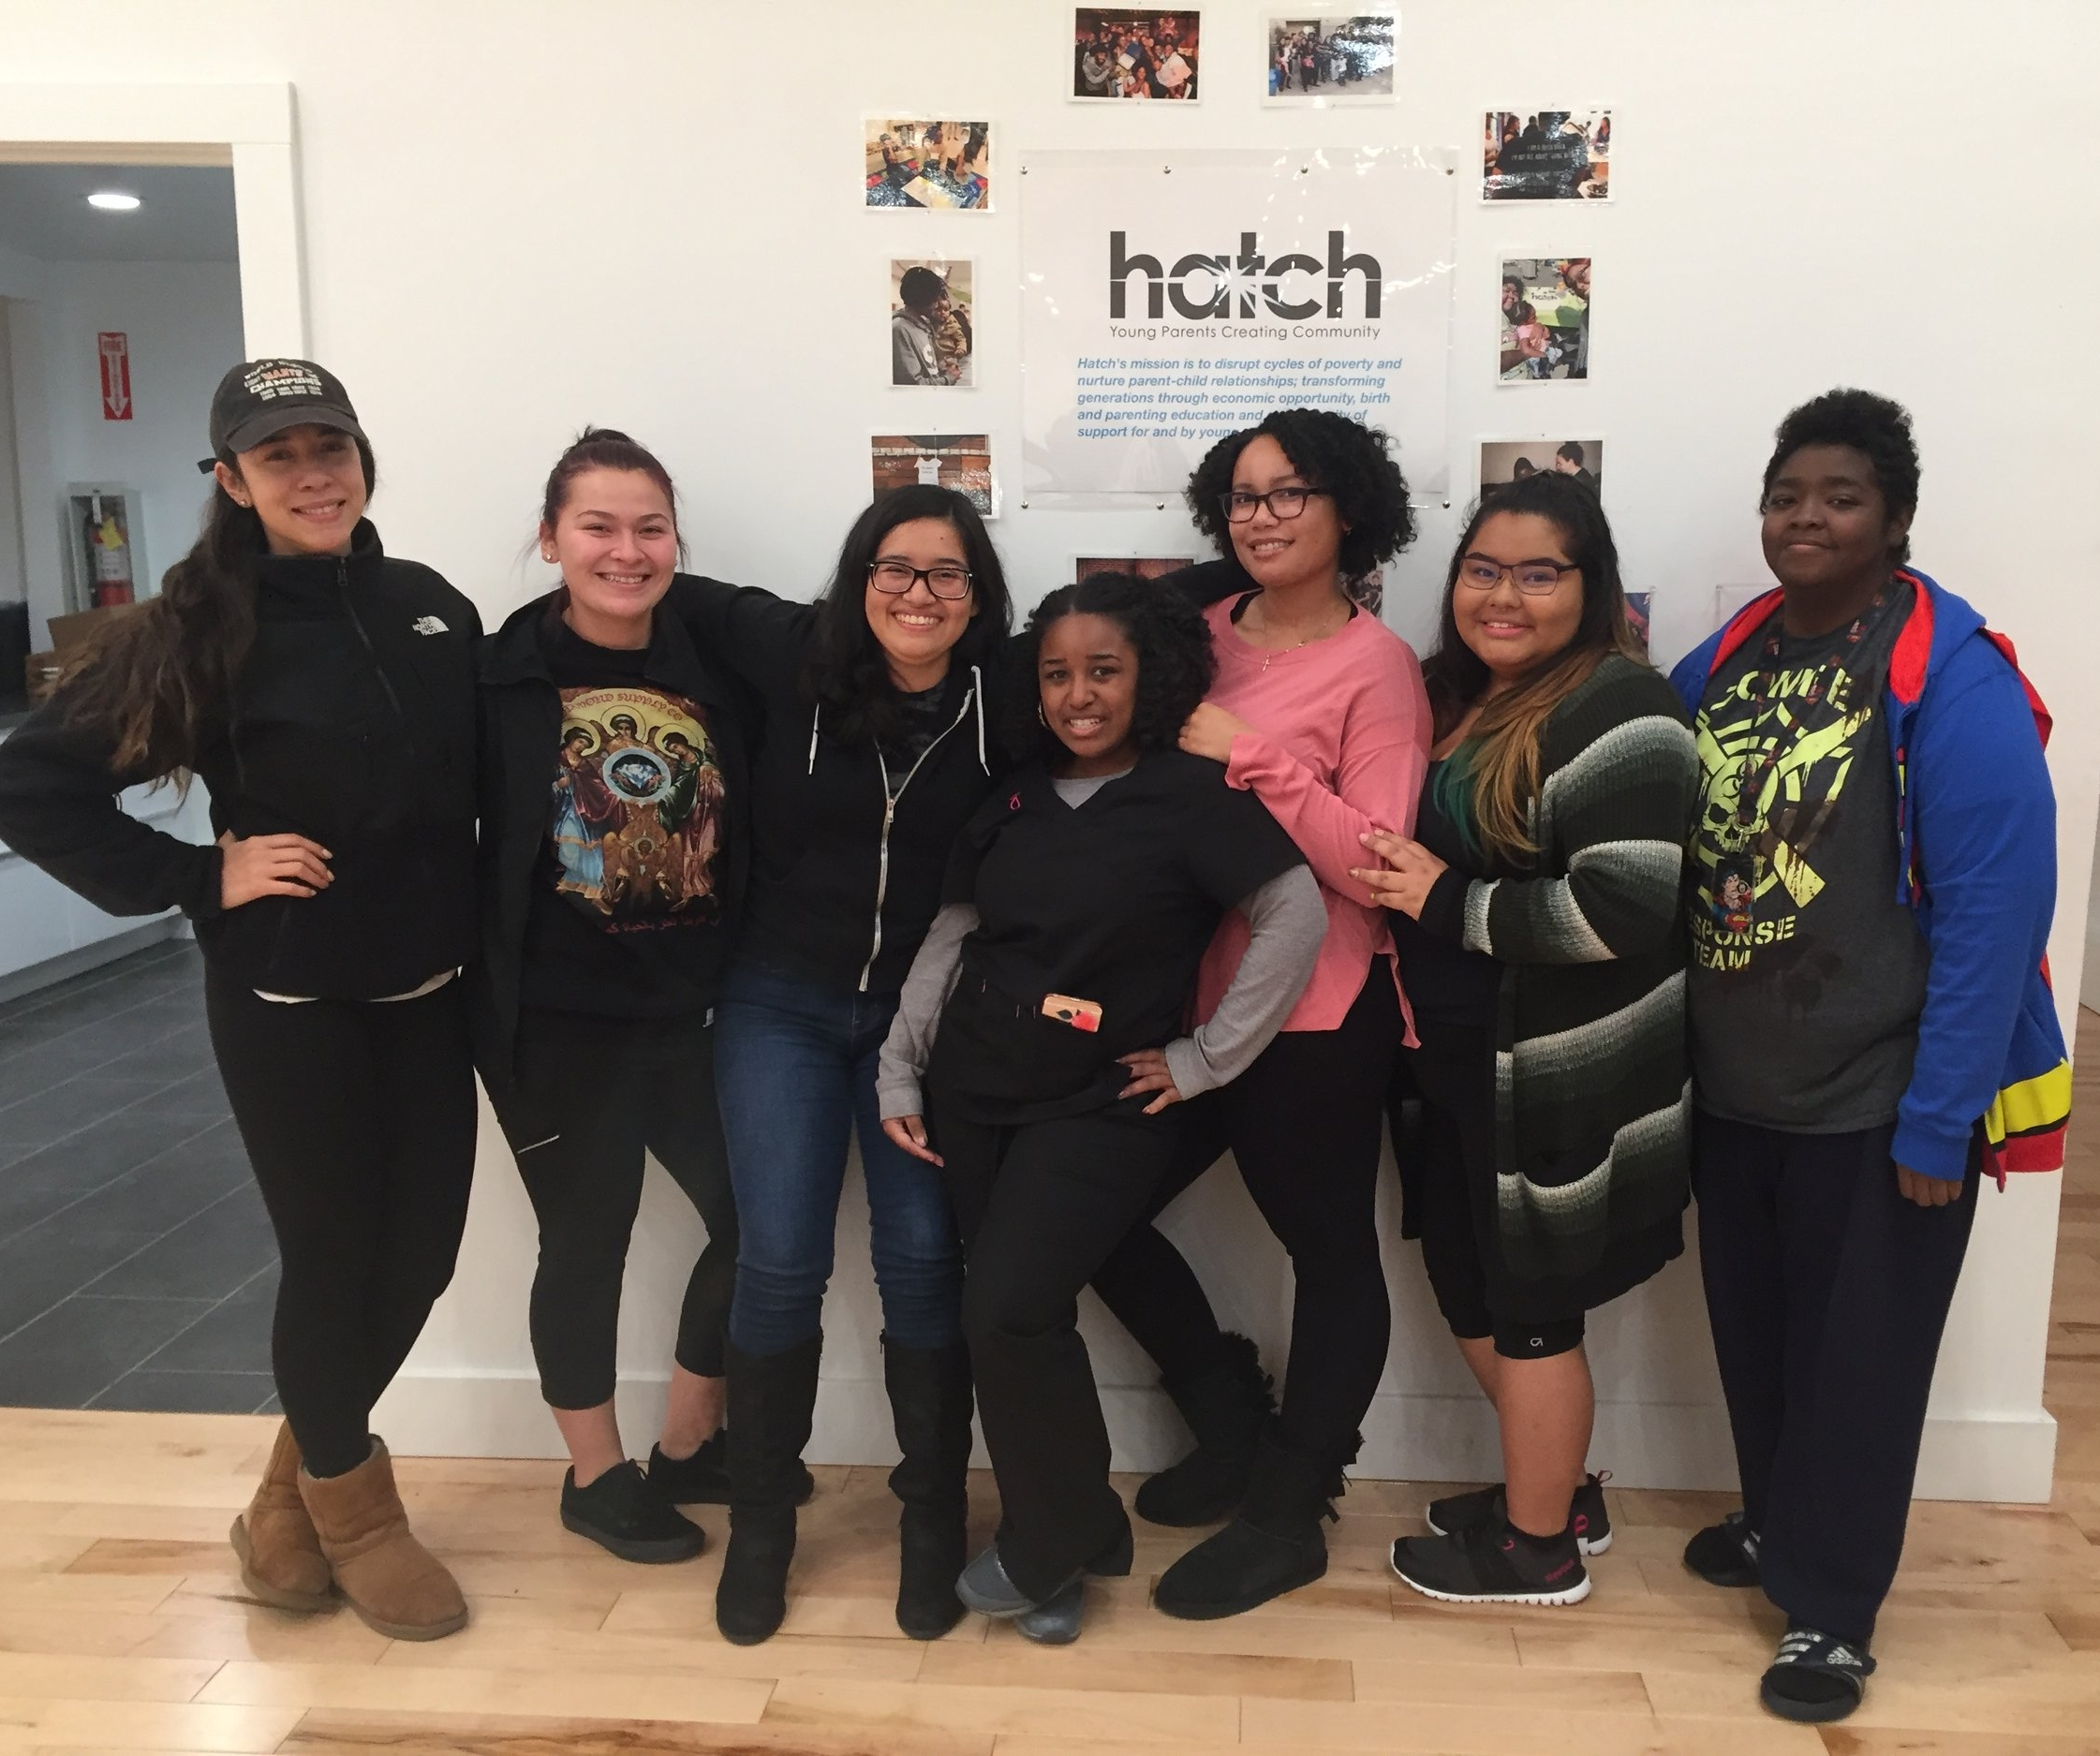 Meet the 2017 Cohort 3 Mentors!  From left to right: Bianca, Beatriz, Nicole, Chantal, Alatia, Natalie, and Brittney.